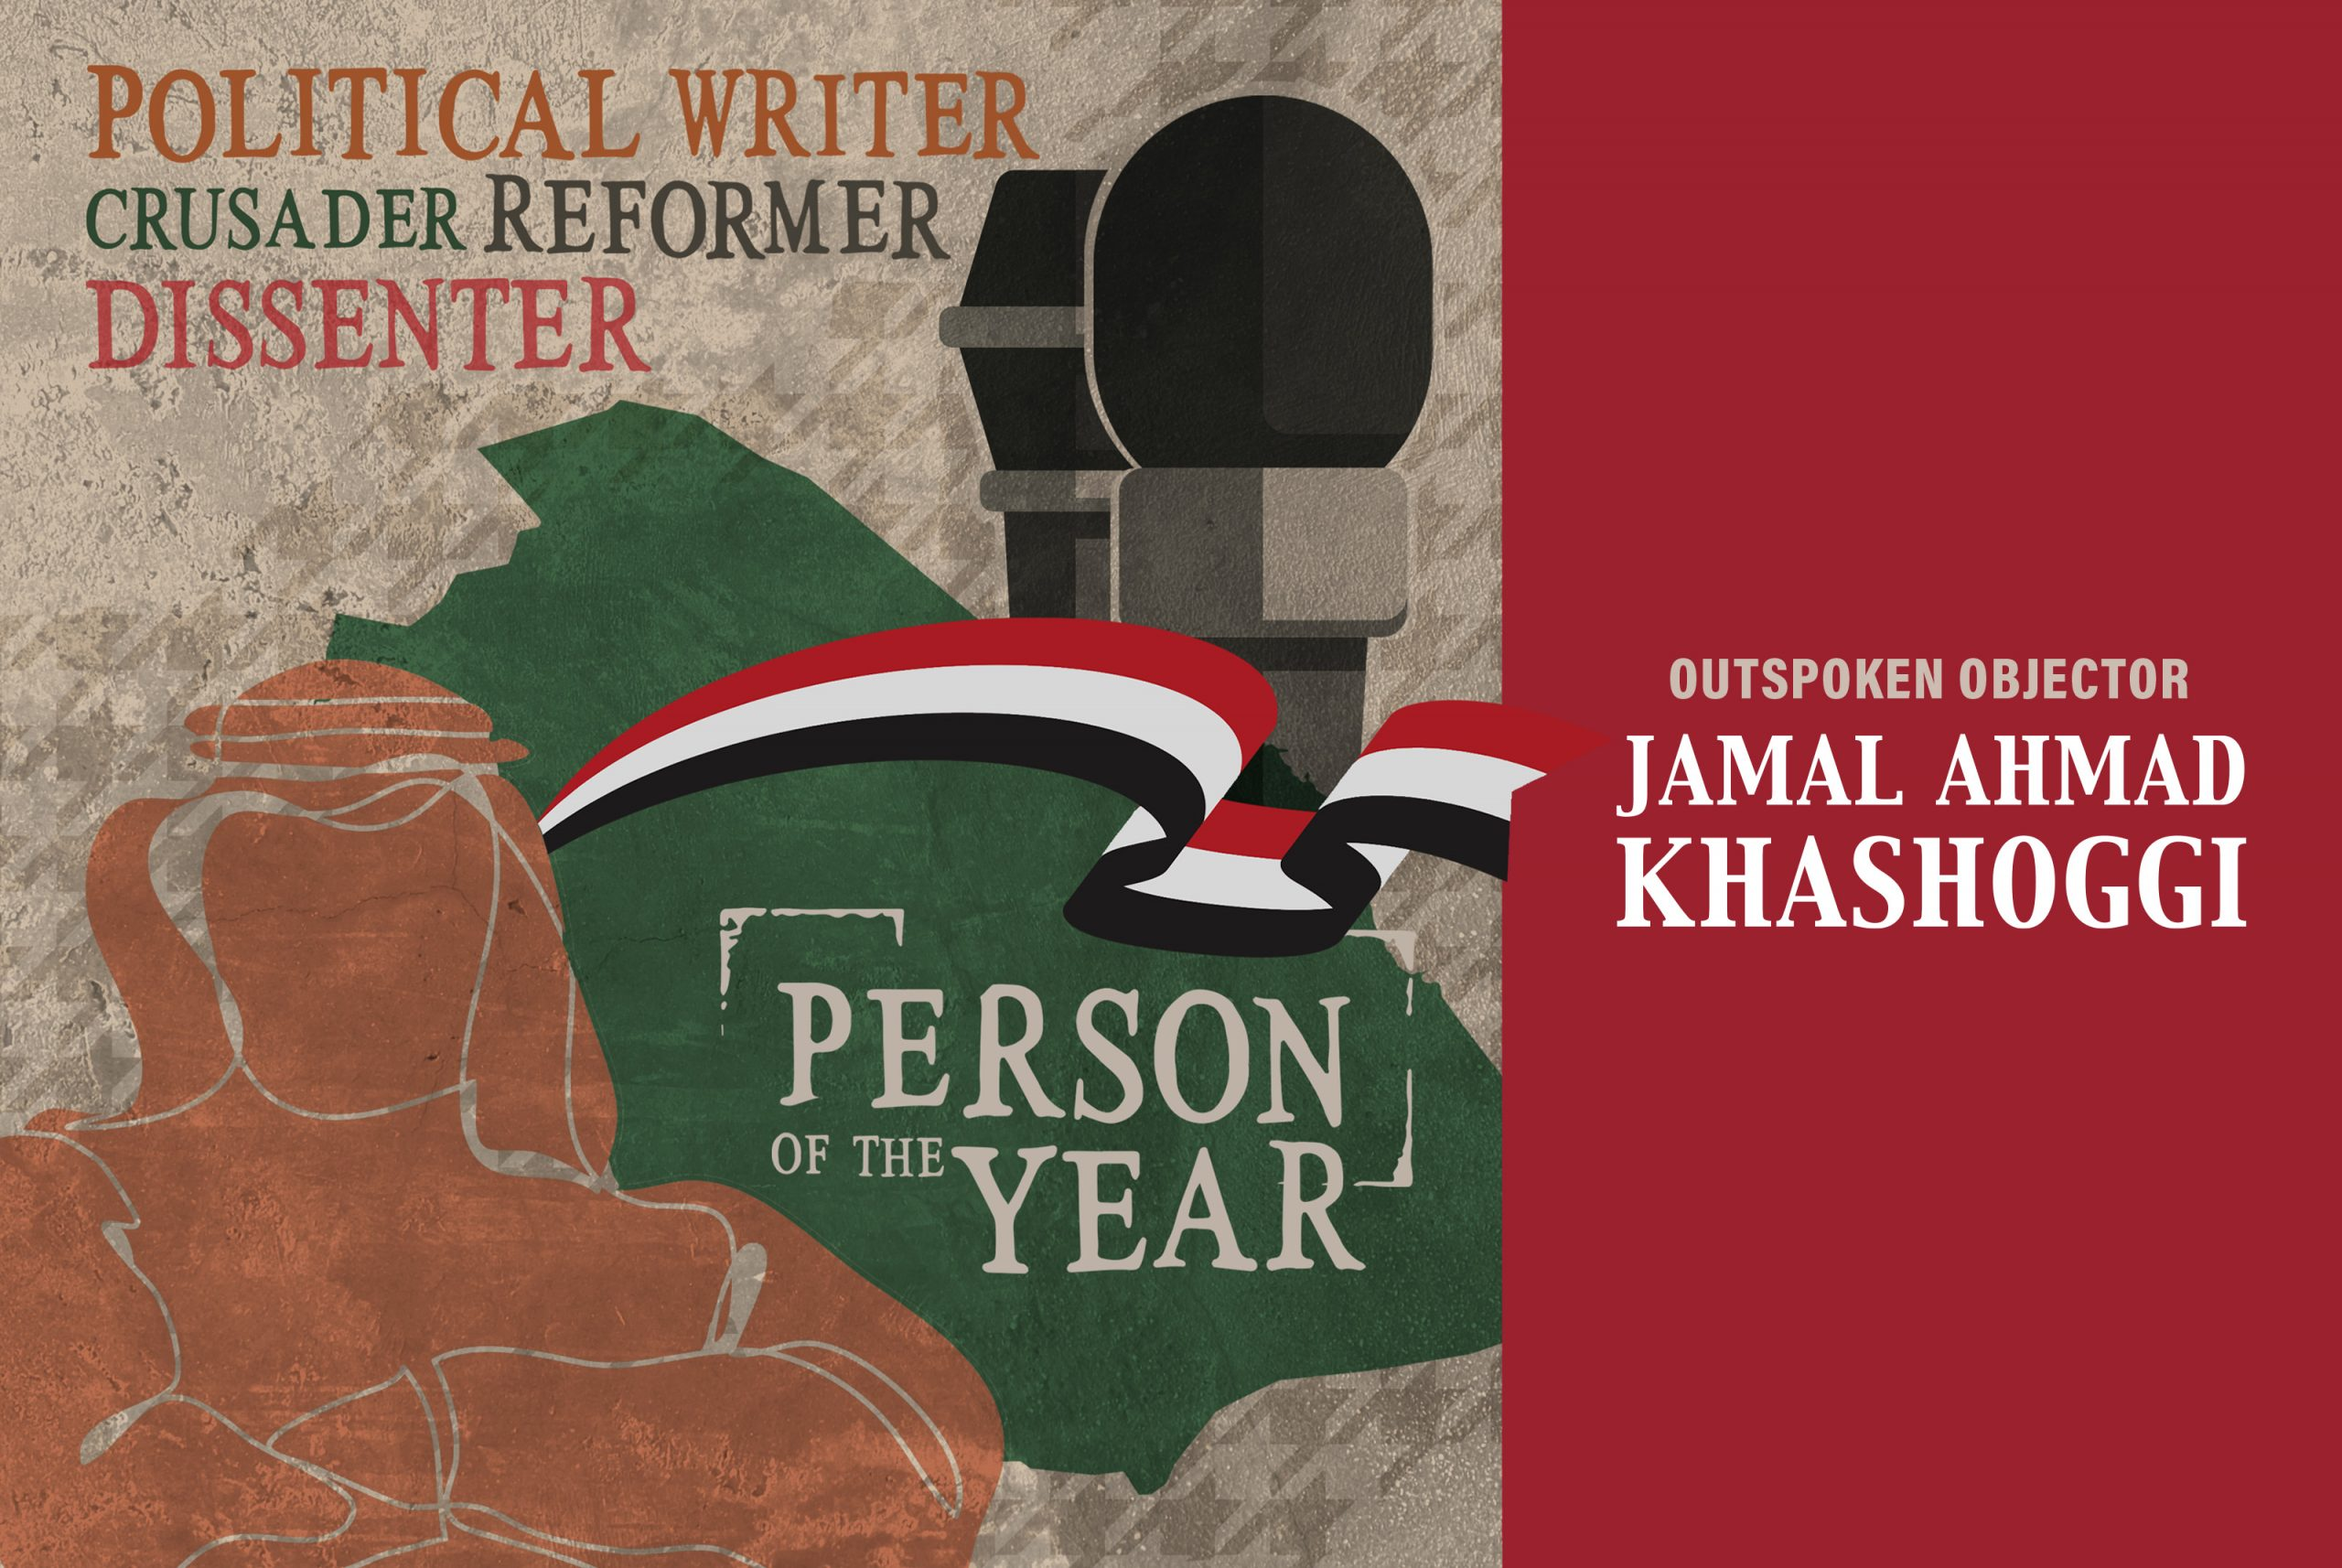 Design honoring Jamal Ahmad Khashoggi as a political writer and dissenter